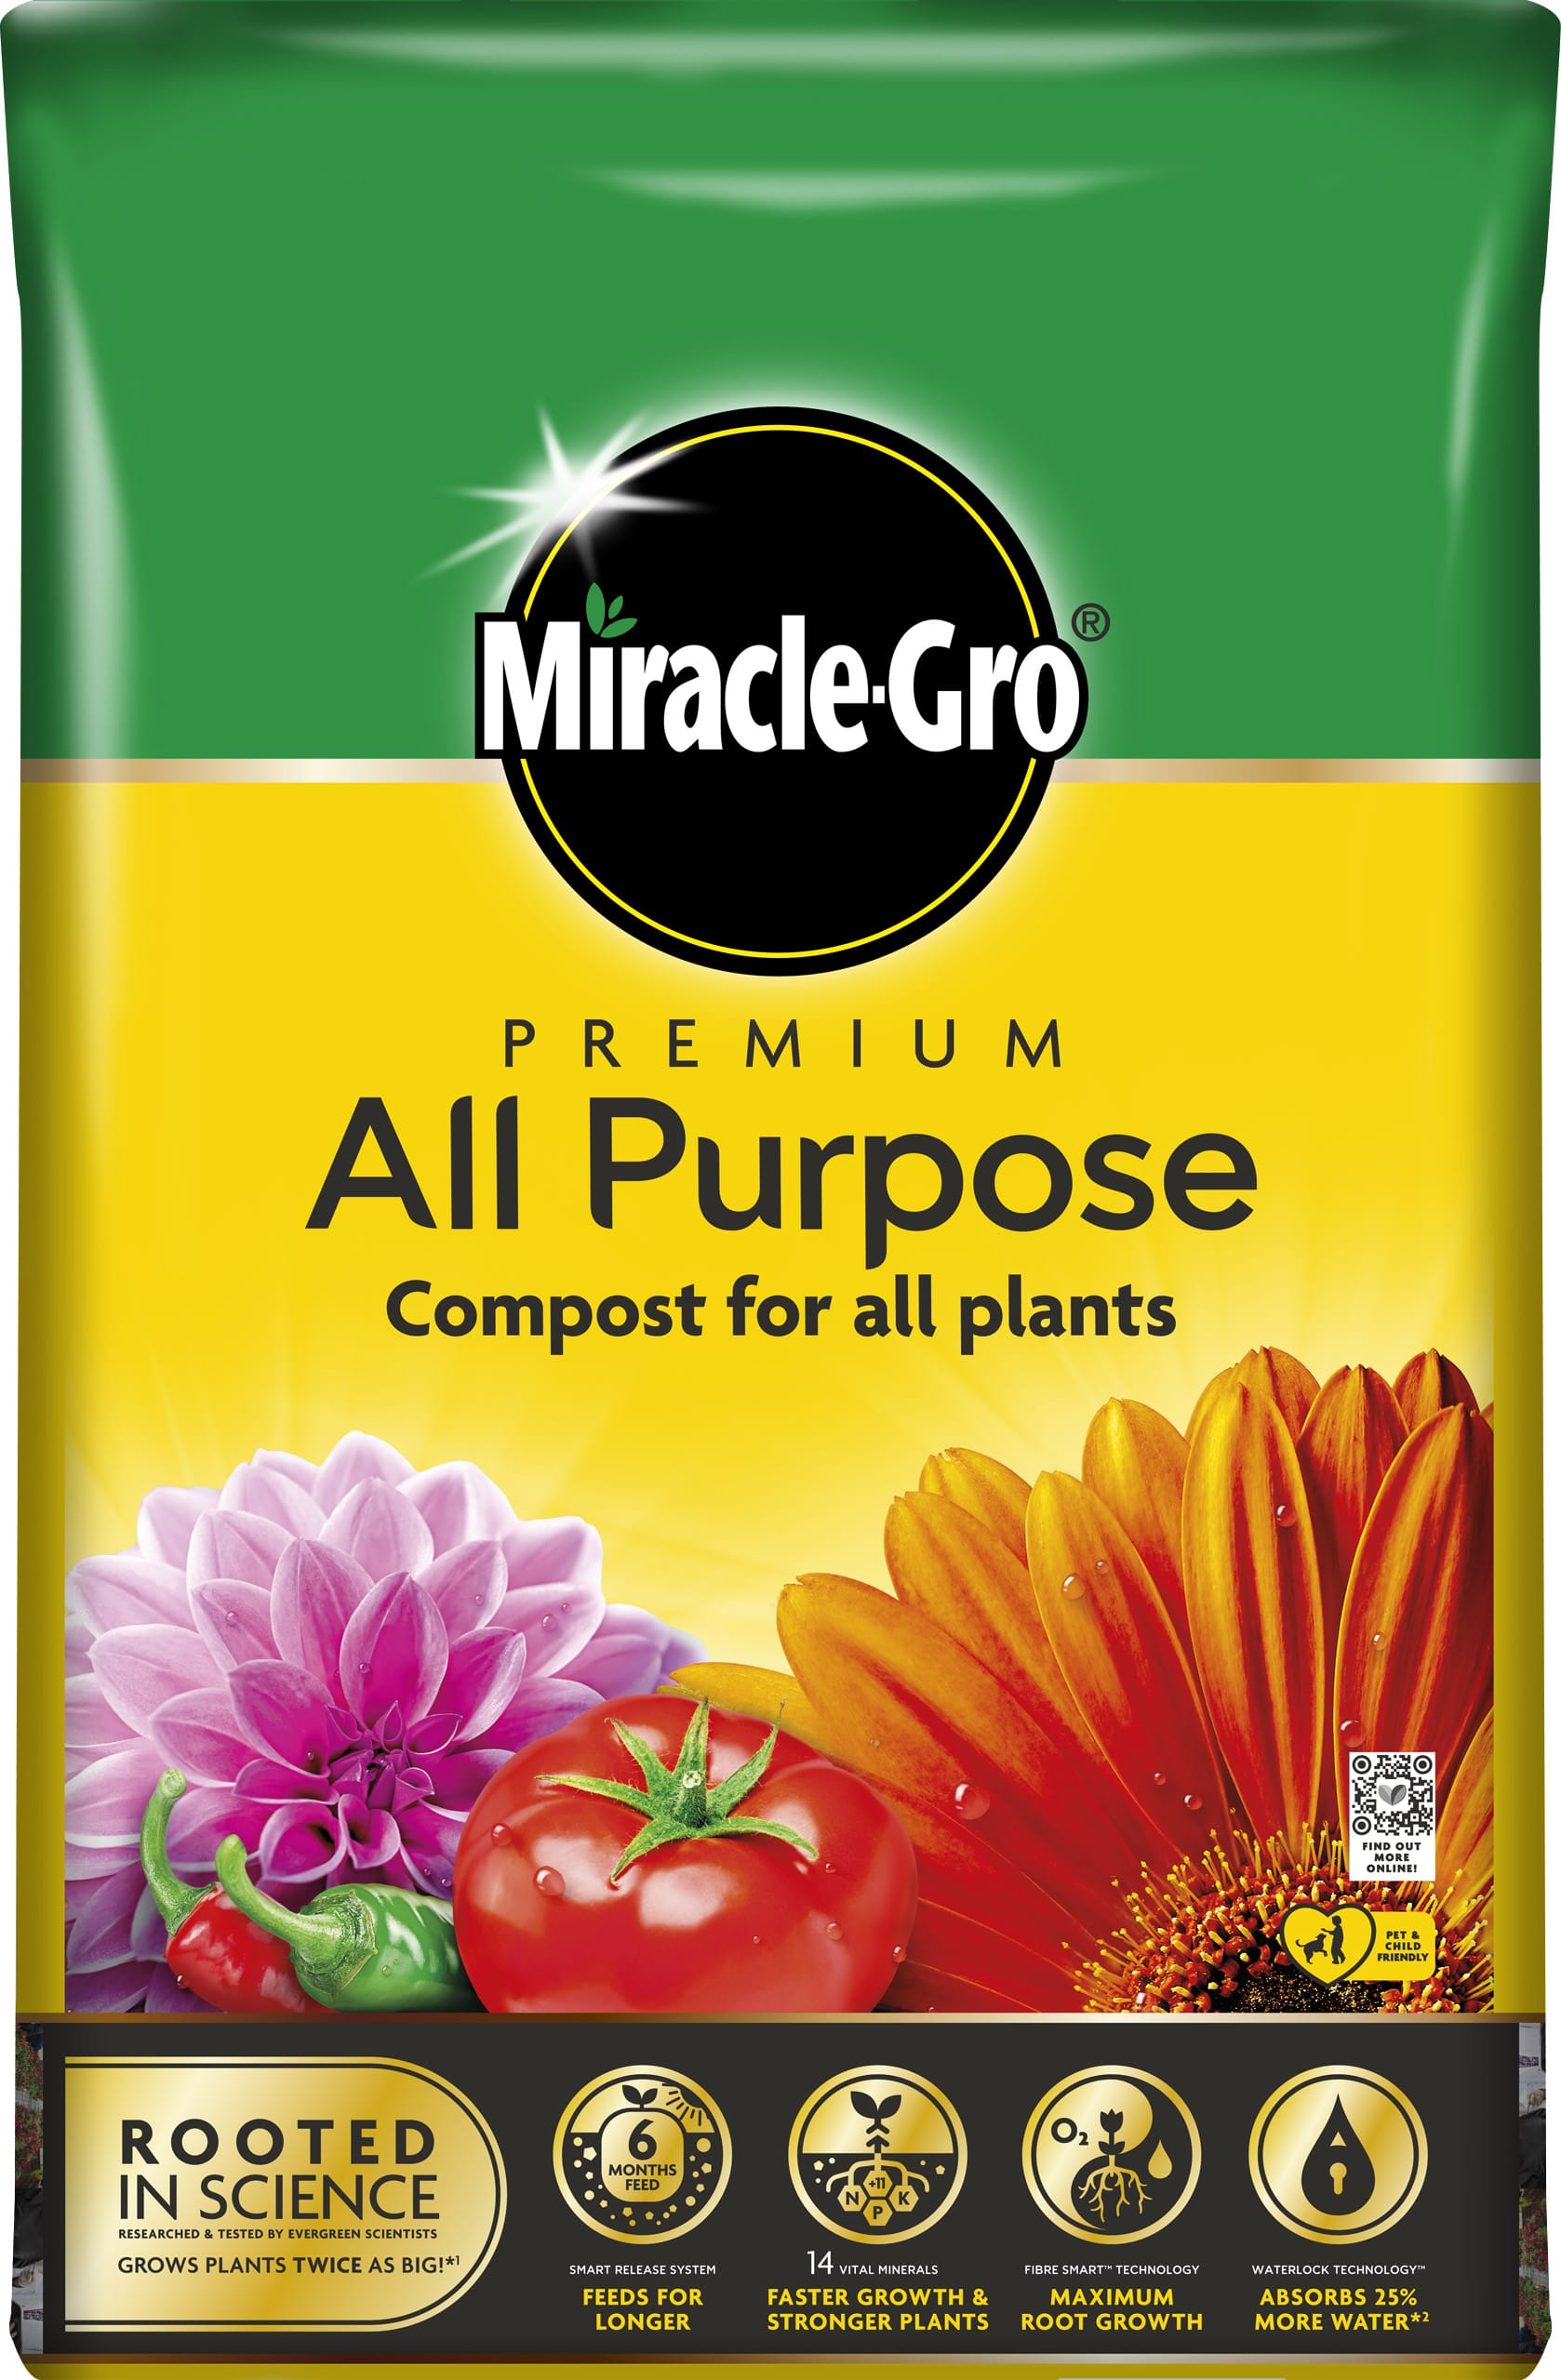 Miracle-Gro All Purpose Compost 20L 119764_119765 C (1)